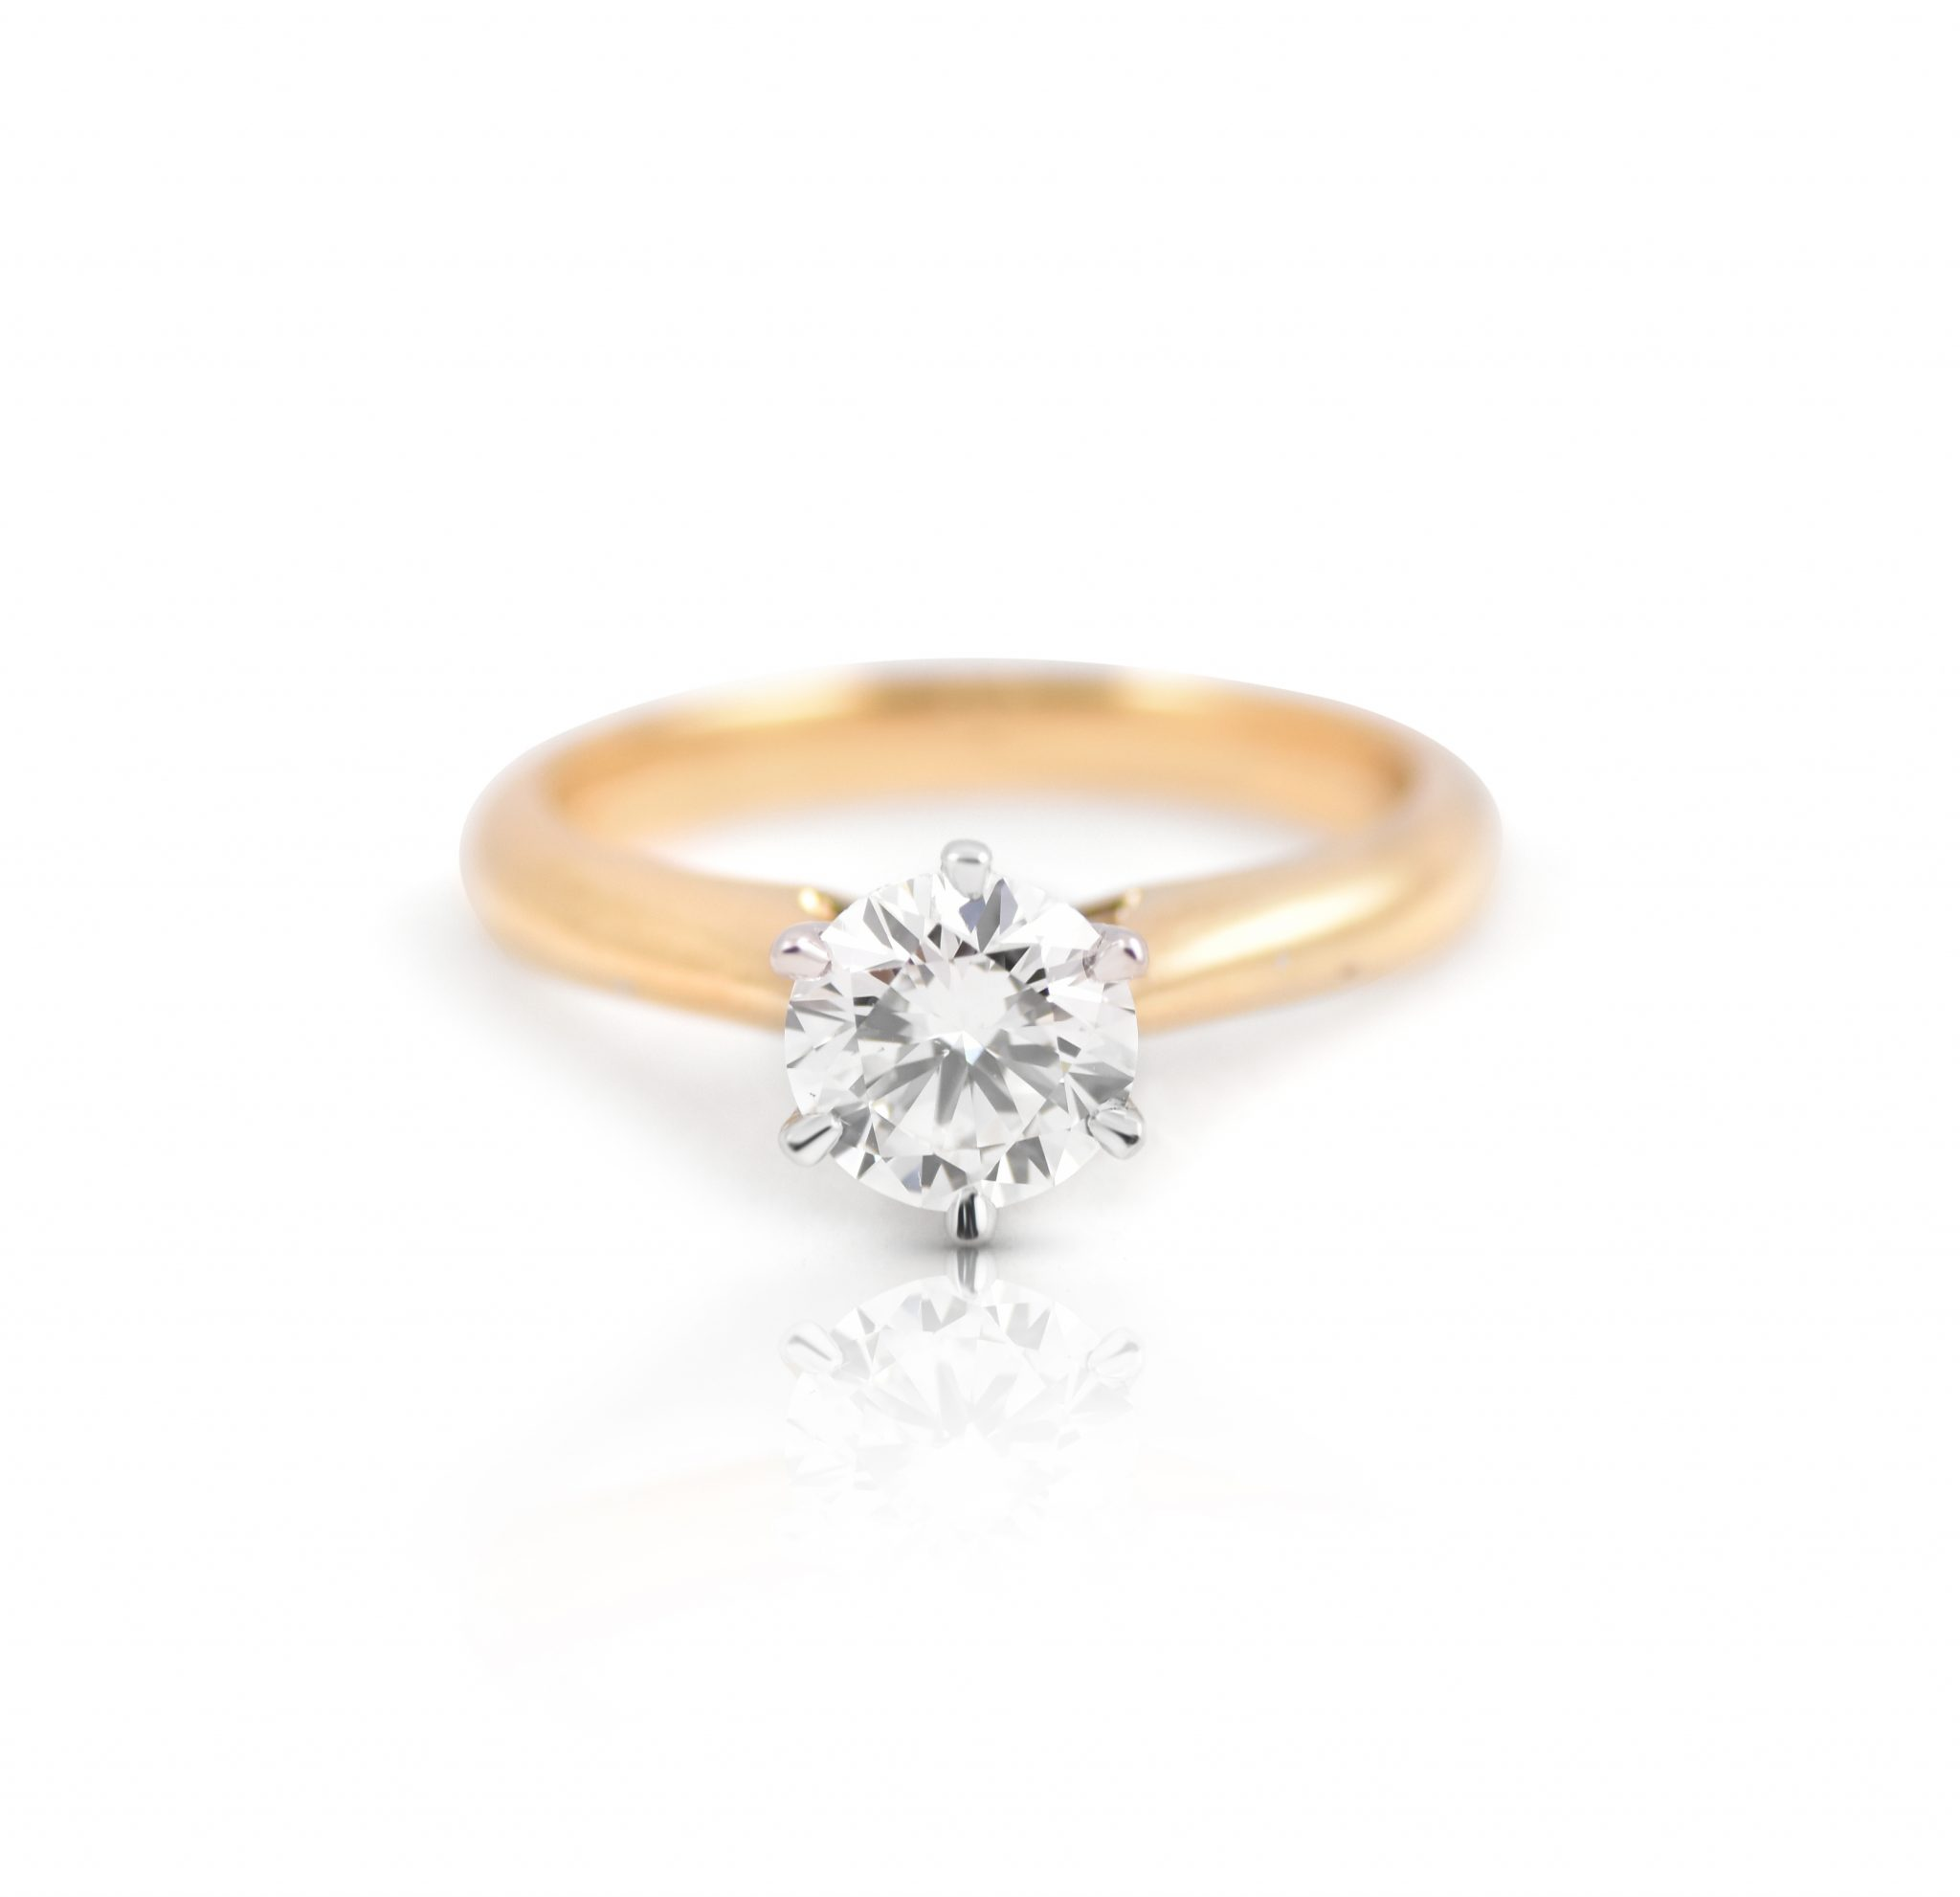 diamond white solitaire brilliant ly round cut da rings engagement ct in certified gold ring